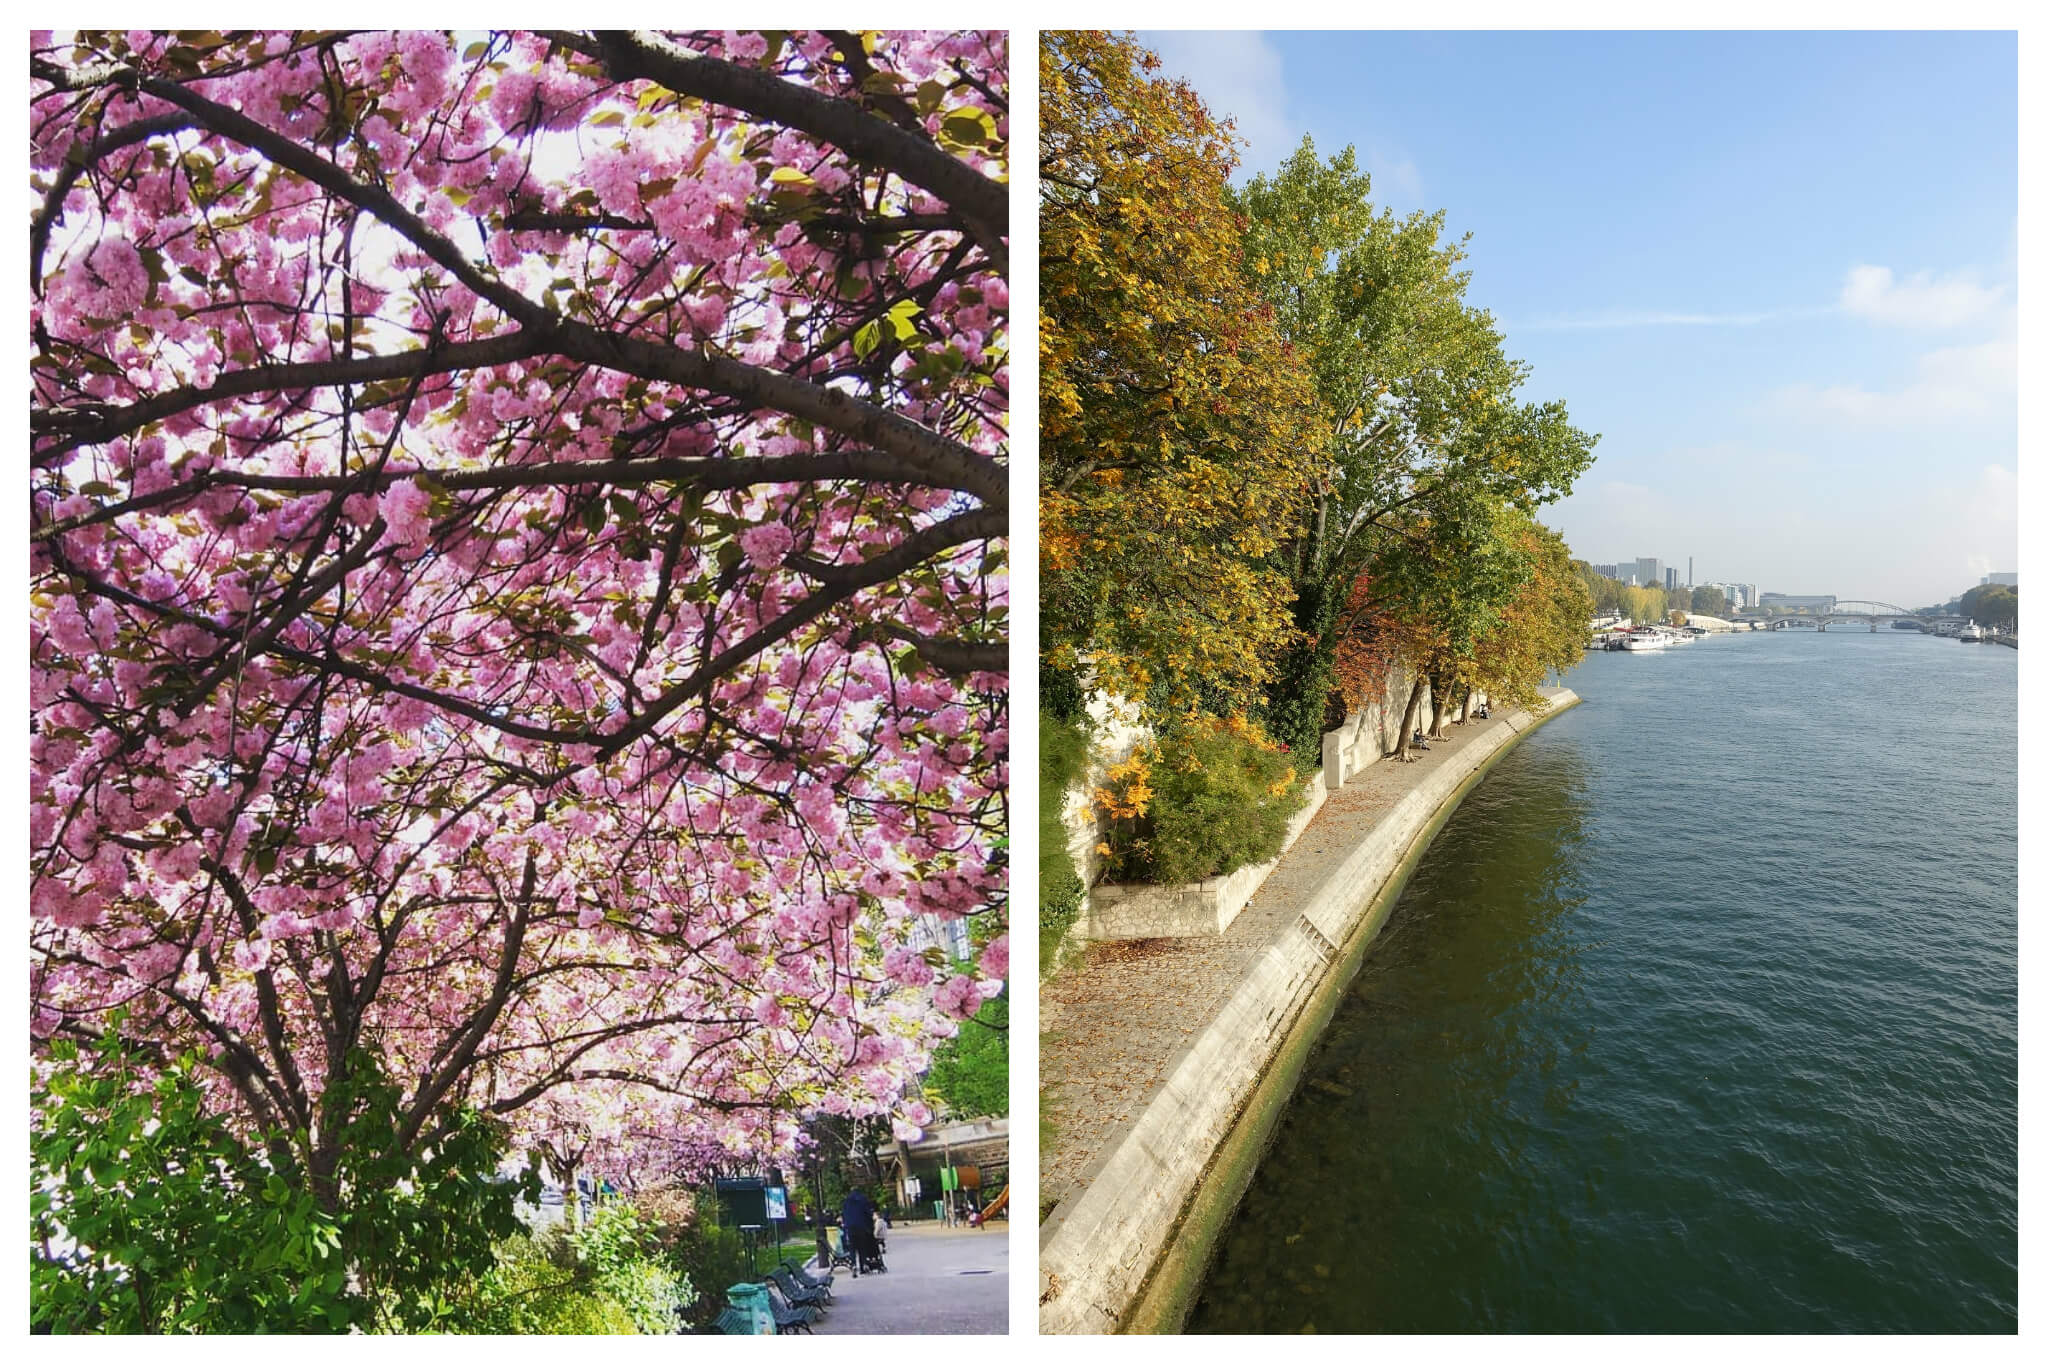 Left: Beautiful pink cherry blossoms are in full bloom on a tree in the Square Paul-Langevin, Right: Trees are in full bloom along the Seine at the Square Barye on a sunny spring day in Paris.